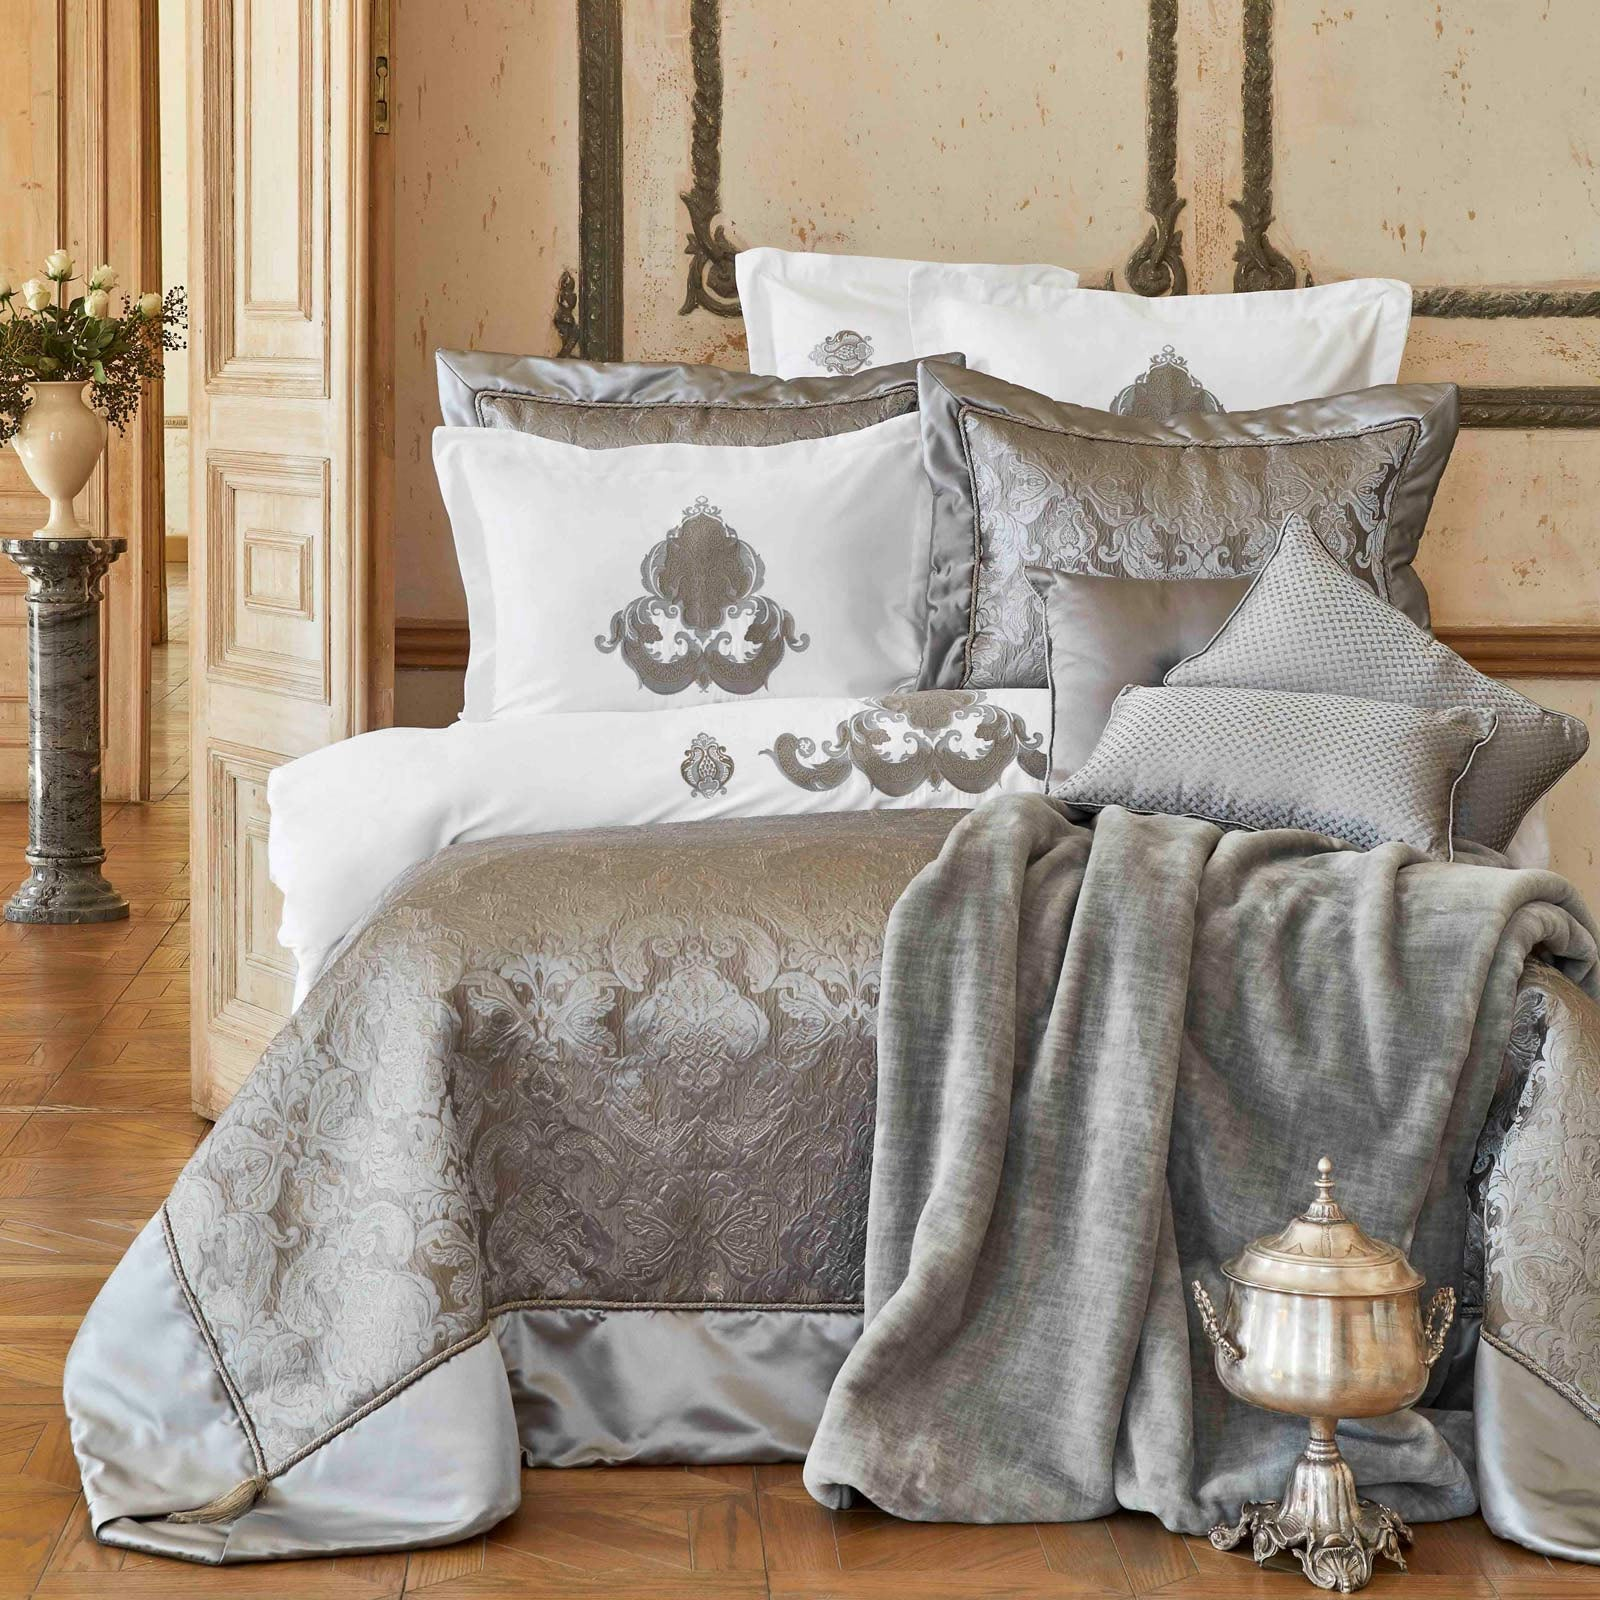 Karaca Home Cornelia Anthracite 6-Piece Silk Private Duvet Cover Set 200.17.01.0177 -  طقم غطاء لحاف حريري خاص مكون من 6 قطع من كاراجا - Shop Online Furniture and Home Decor Store in Dubai, UAE at ebarza